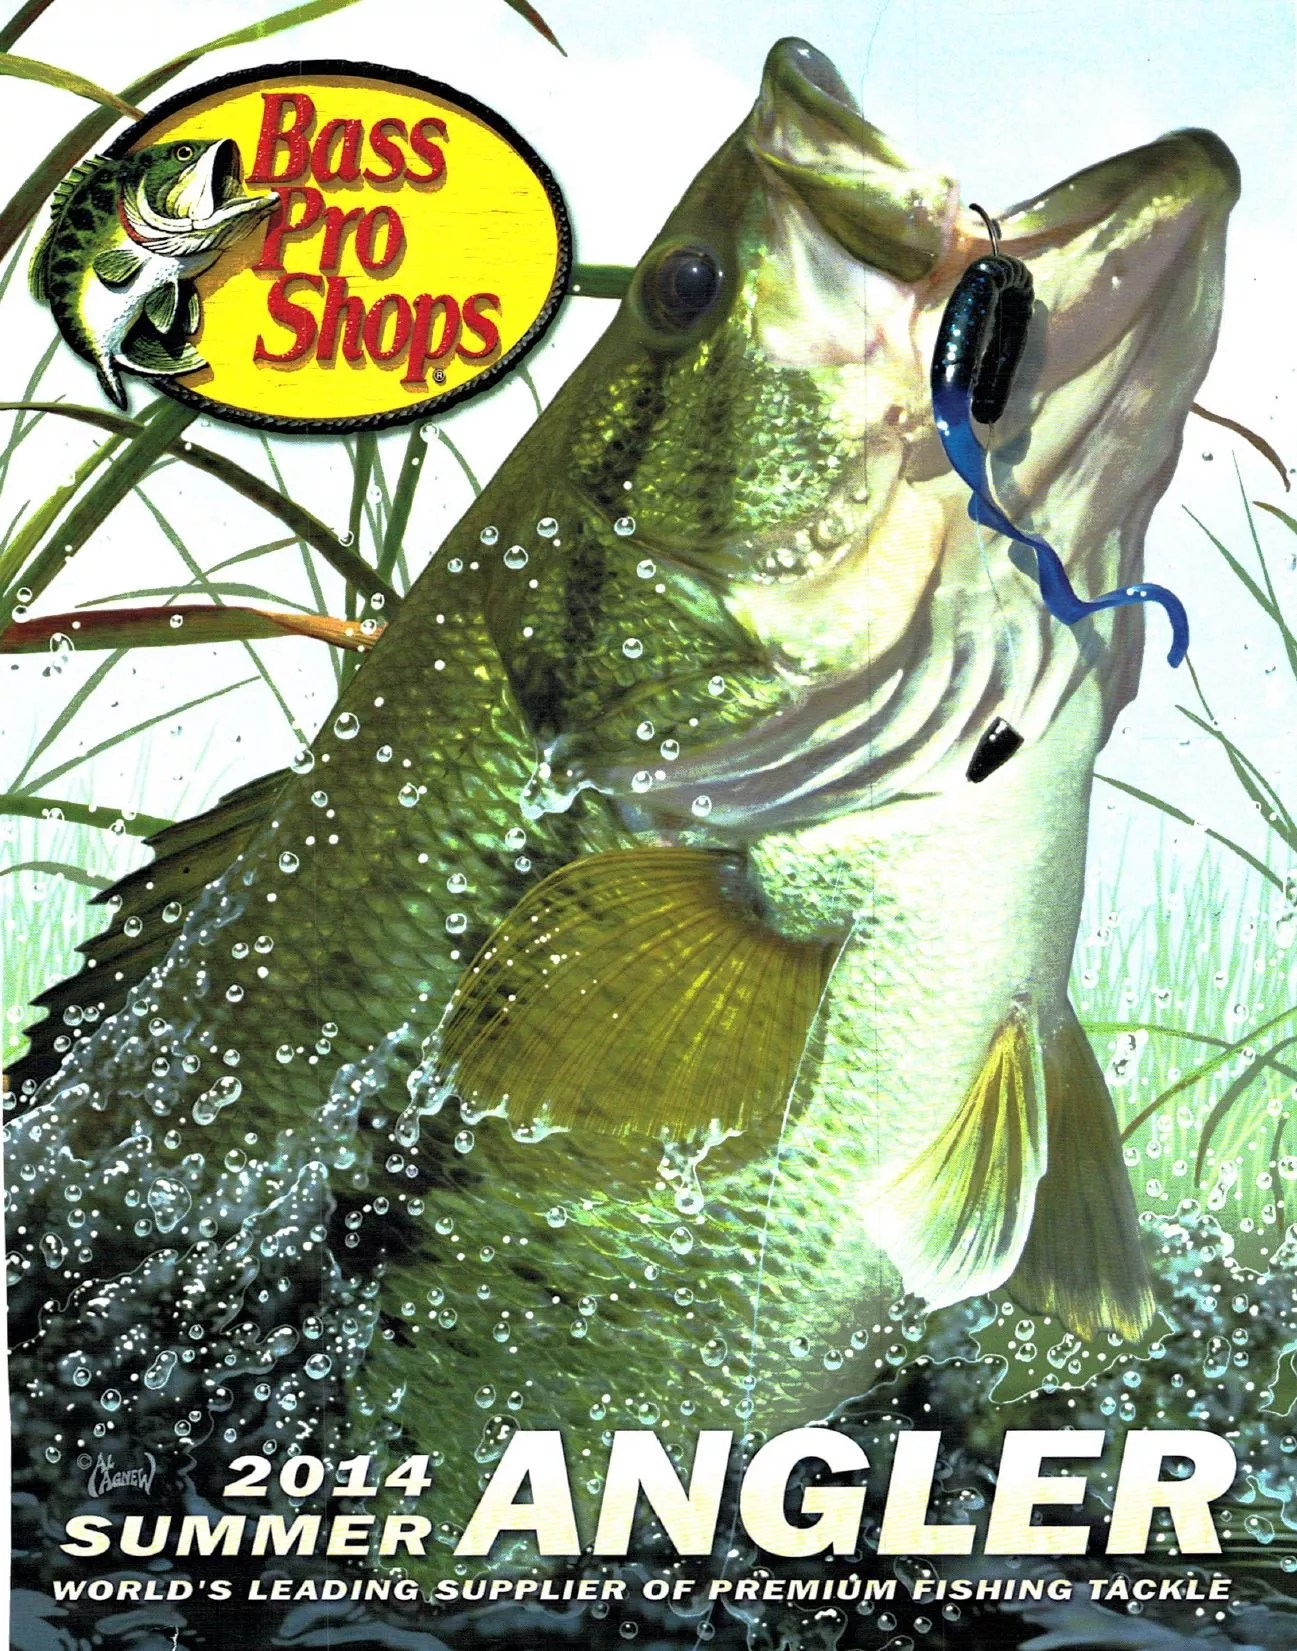 Bass Pro Shop Summer Angler Catalog 2014 – ORCA